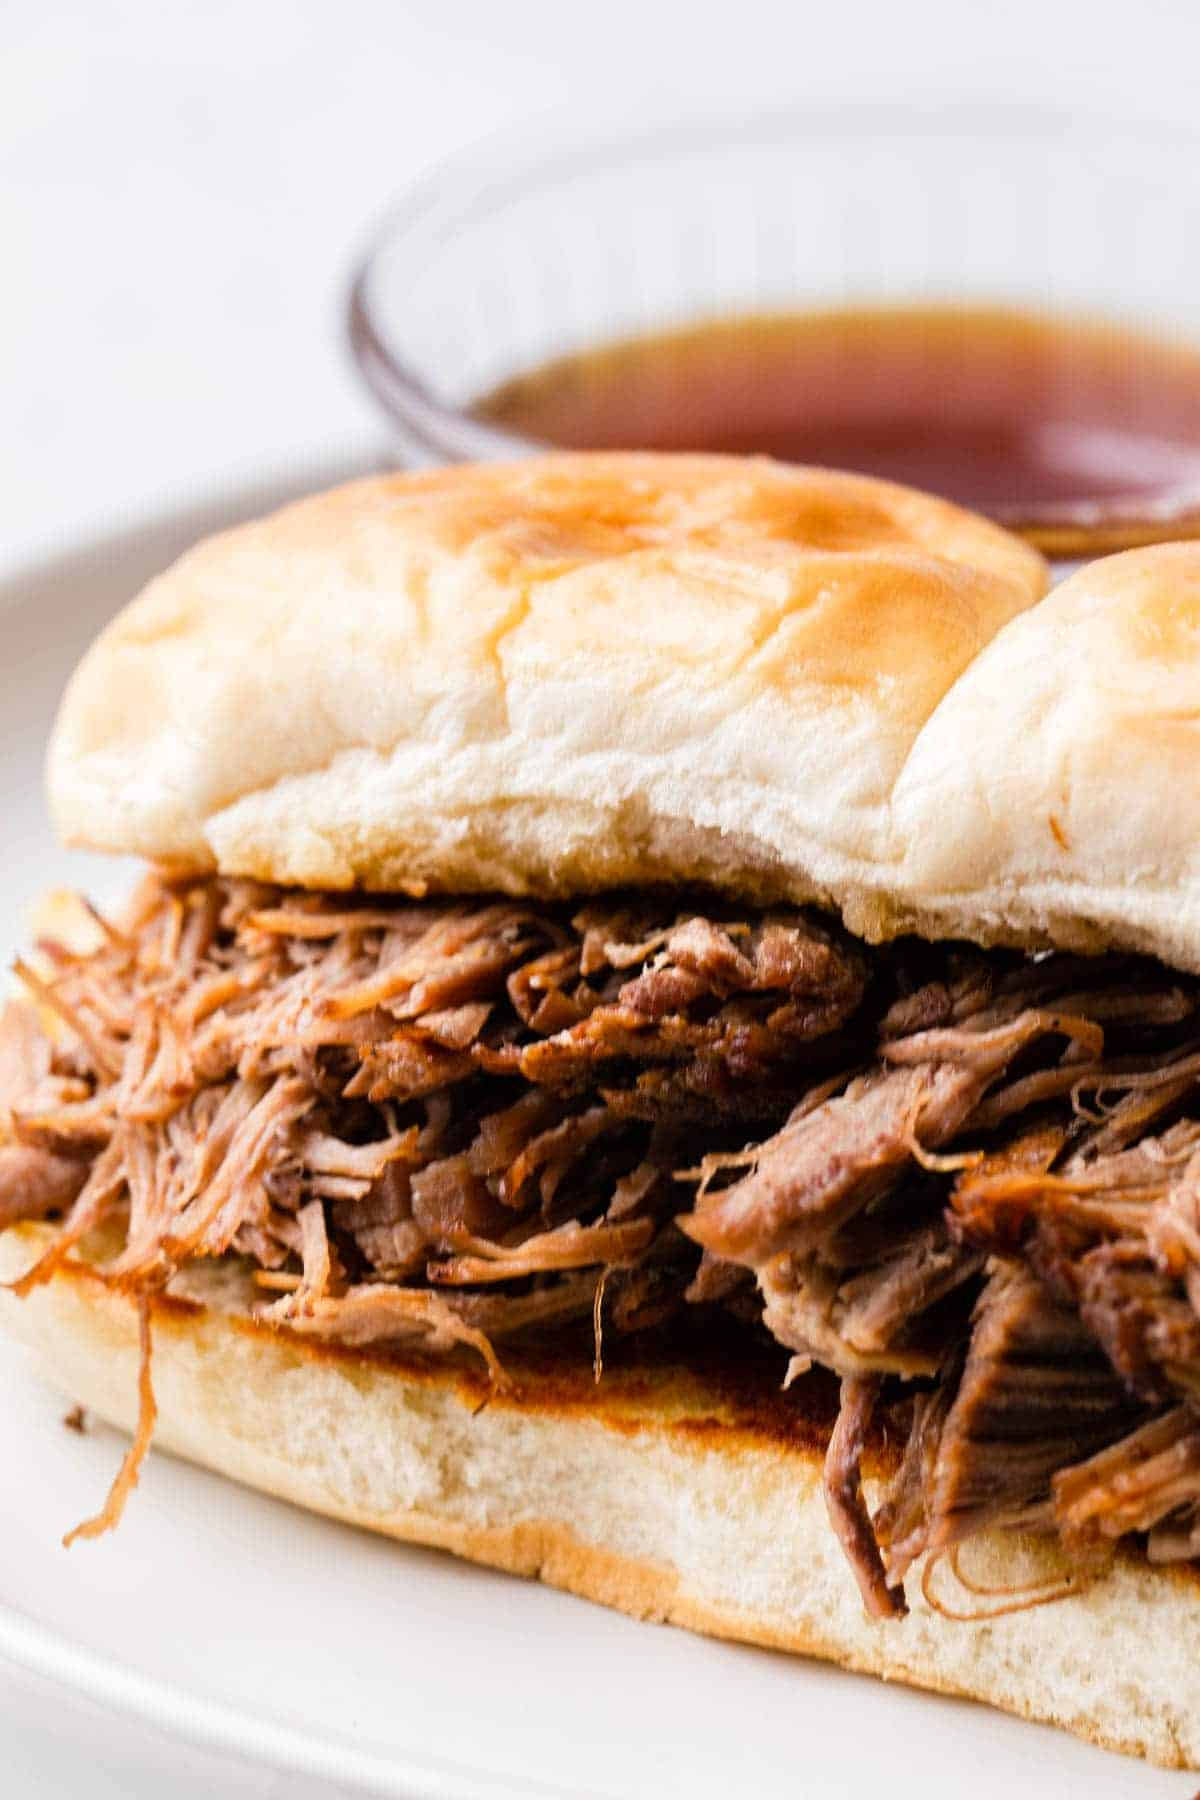 French dip sandwich.